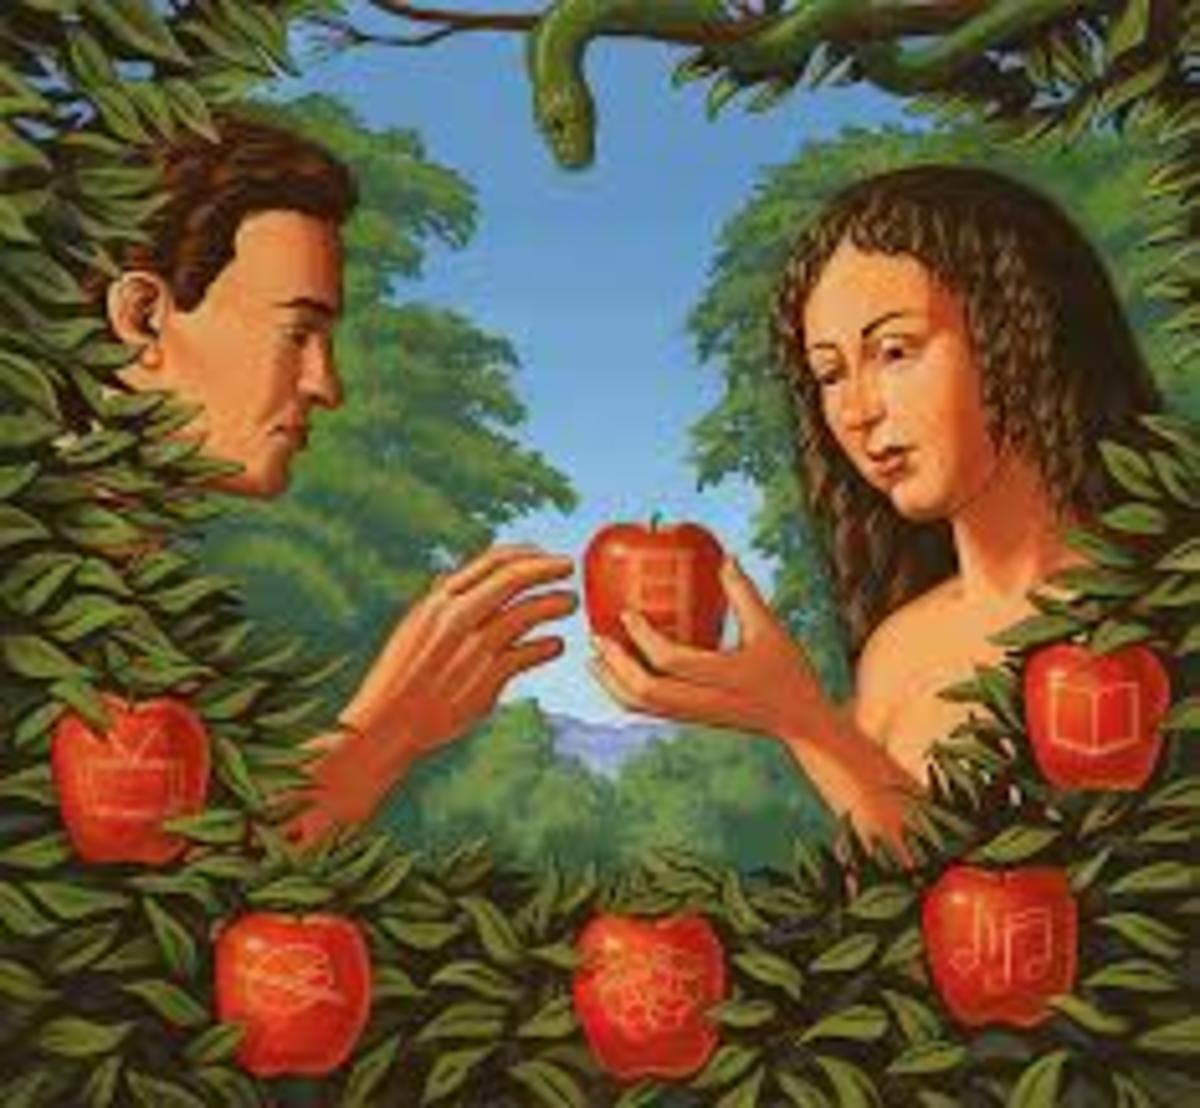 Adam & Eve is more than a story from The Bible. It could have been used for other things besides the main theme. Read my theory, it's quite interesting.